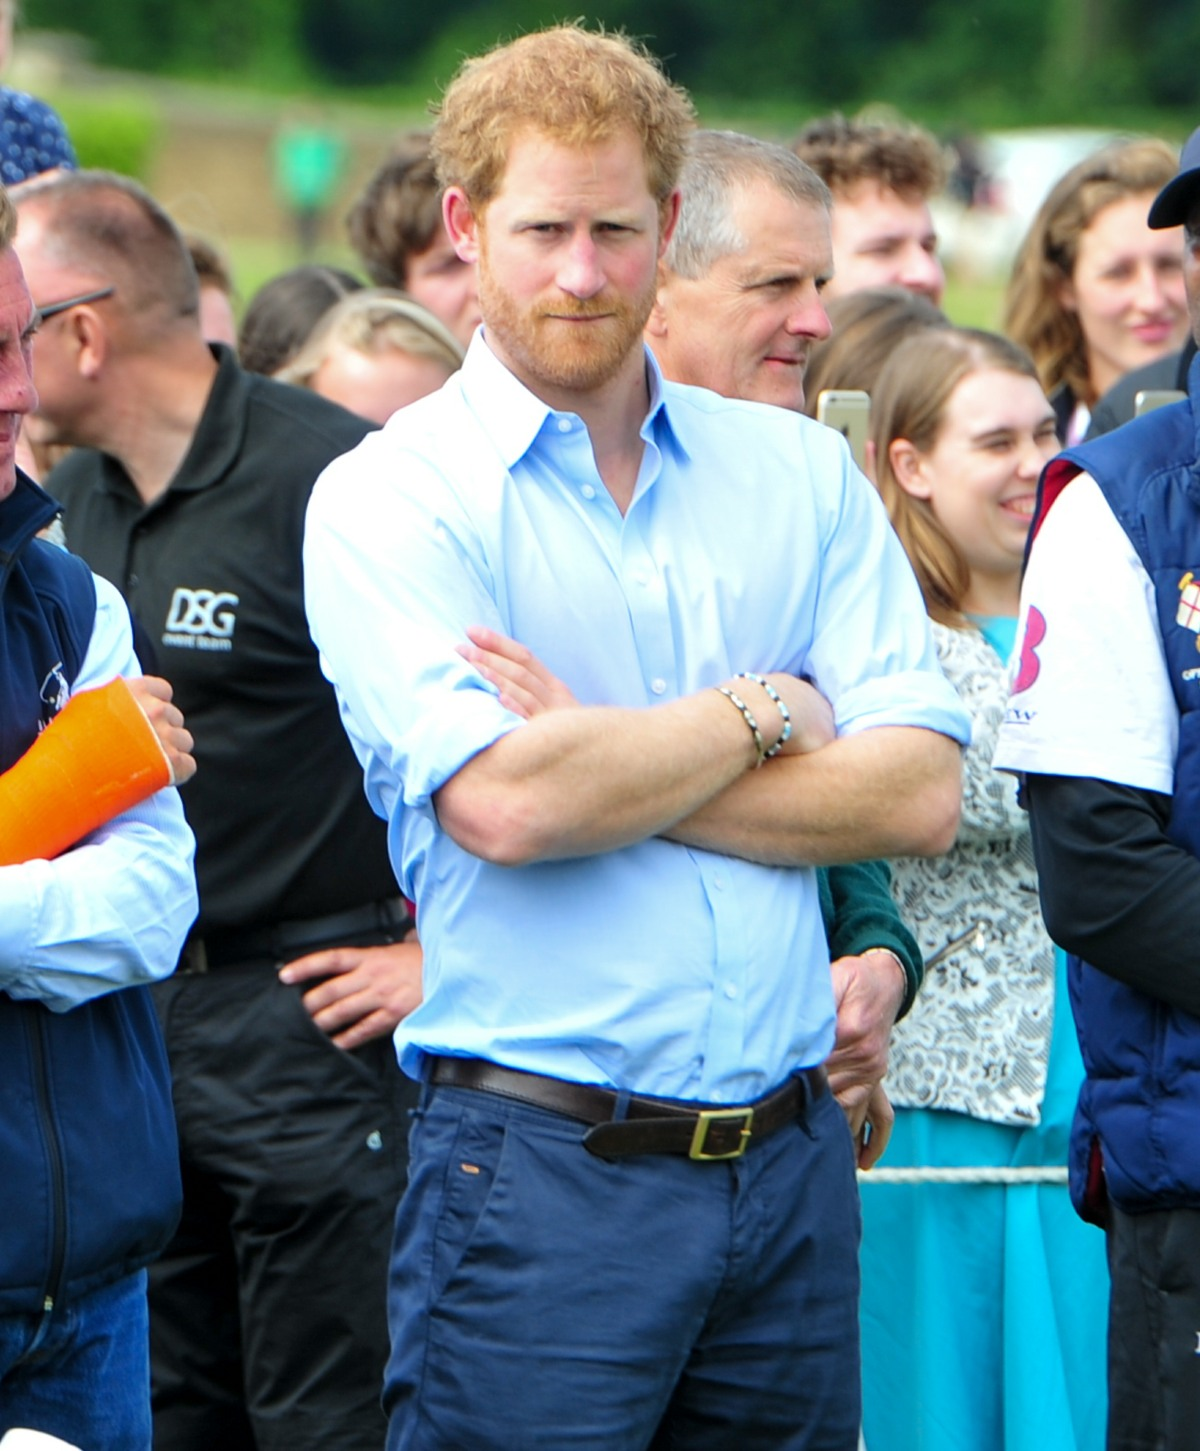 HRH Prince Harry Of Wales, seen at the Festival of Polo at Beaufort Polo Club, Gloucestershire